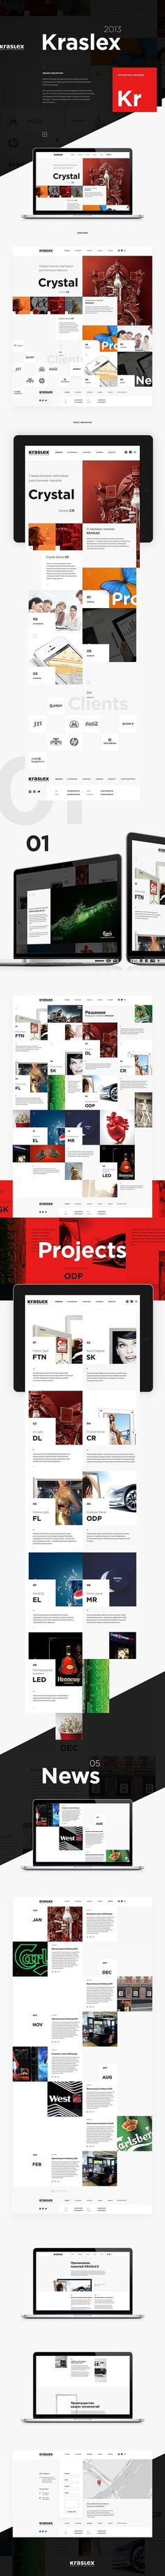 K R S L X by Alexey Masalov, via Behance #design #bold #black #corporate #web